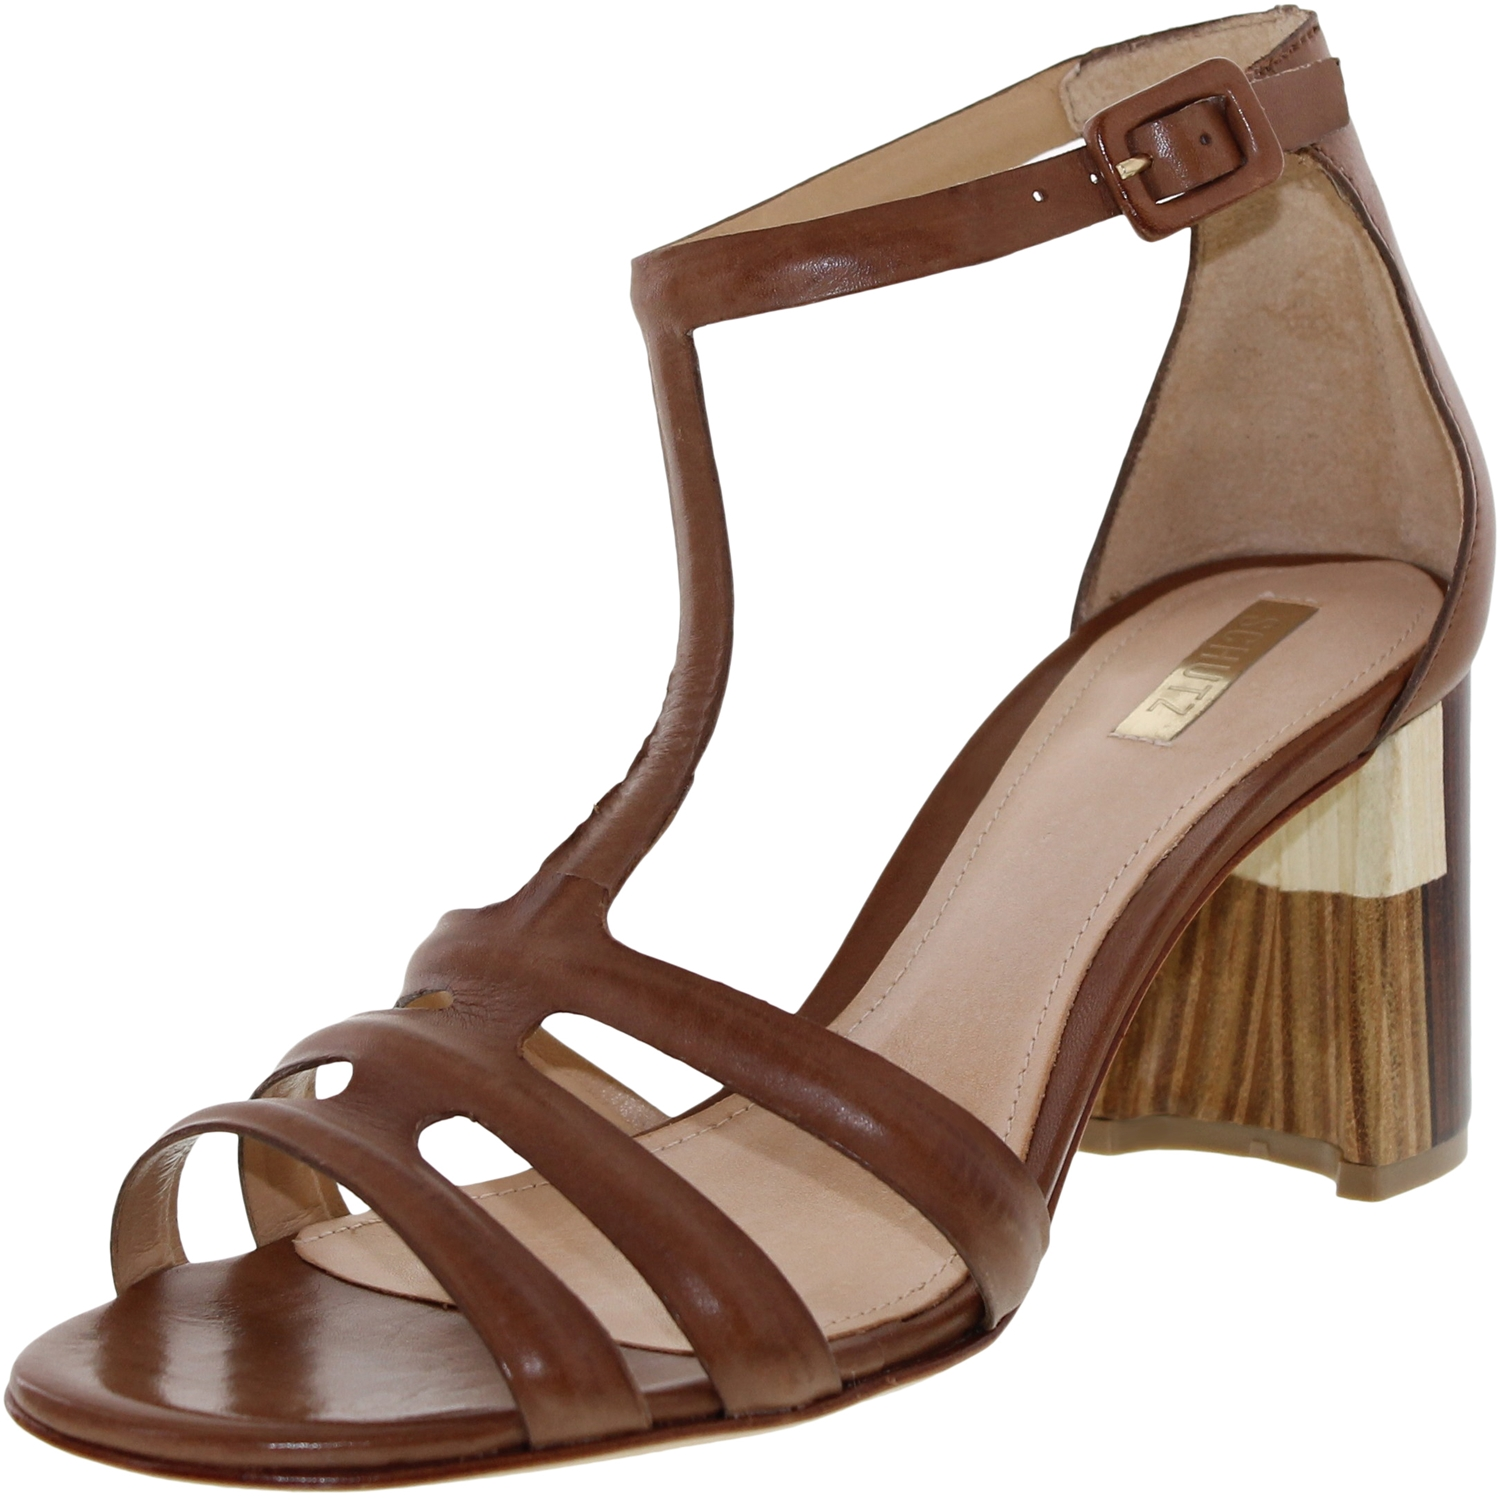 Schutz Women's Candida Boulder Ankle-High Leather Sandal - 9.5M